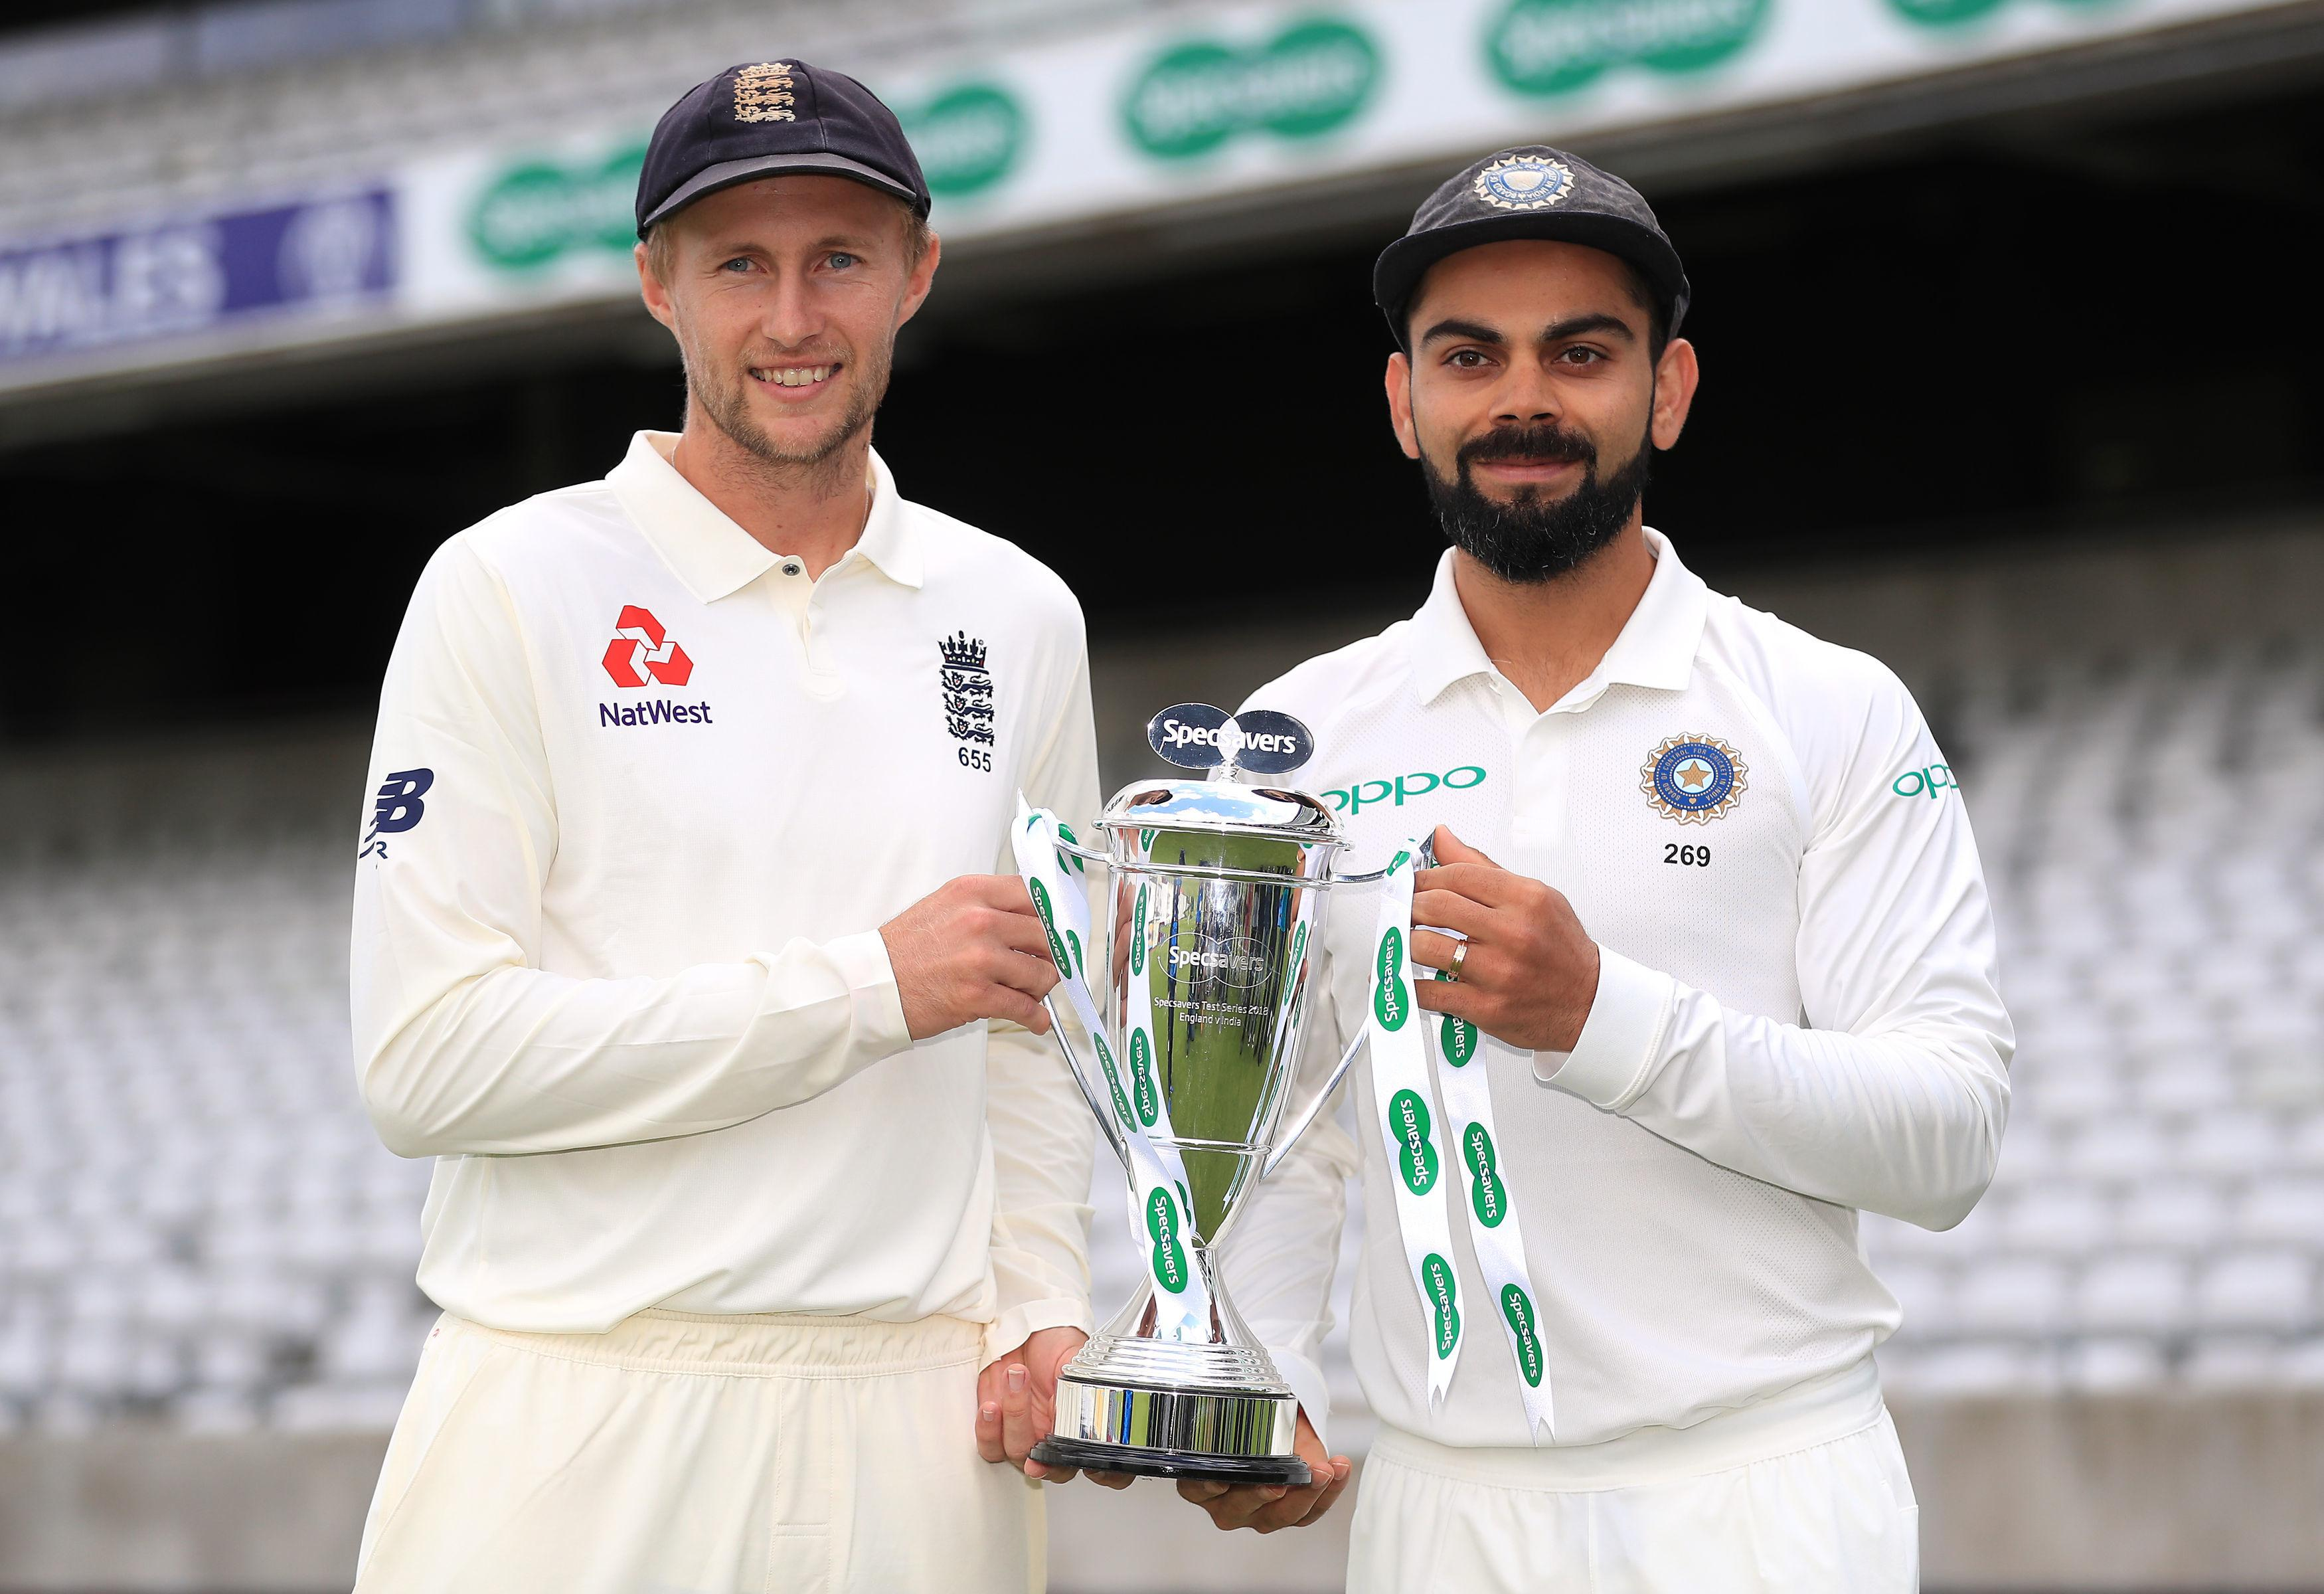 England welcome Virat Kohli's men, who are the No 1 Test side in the world